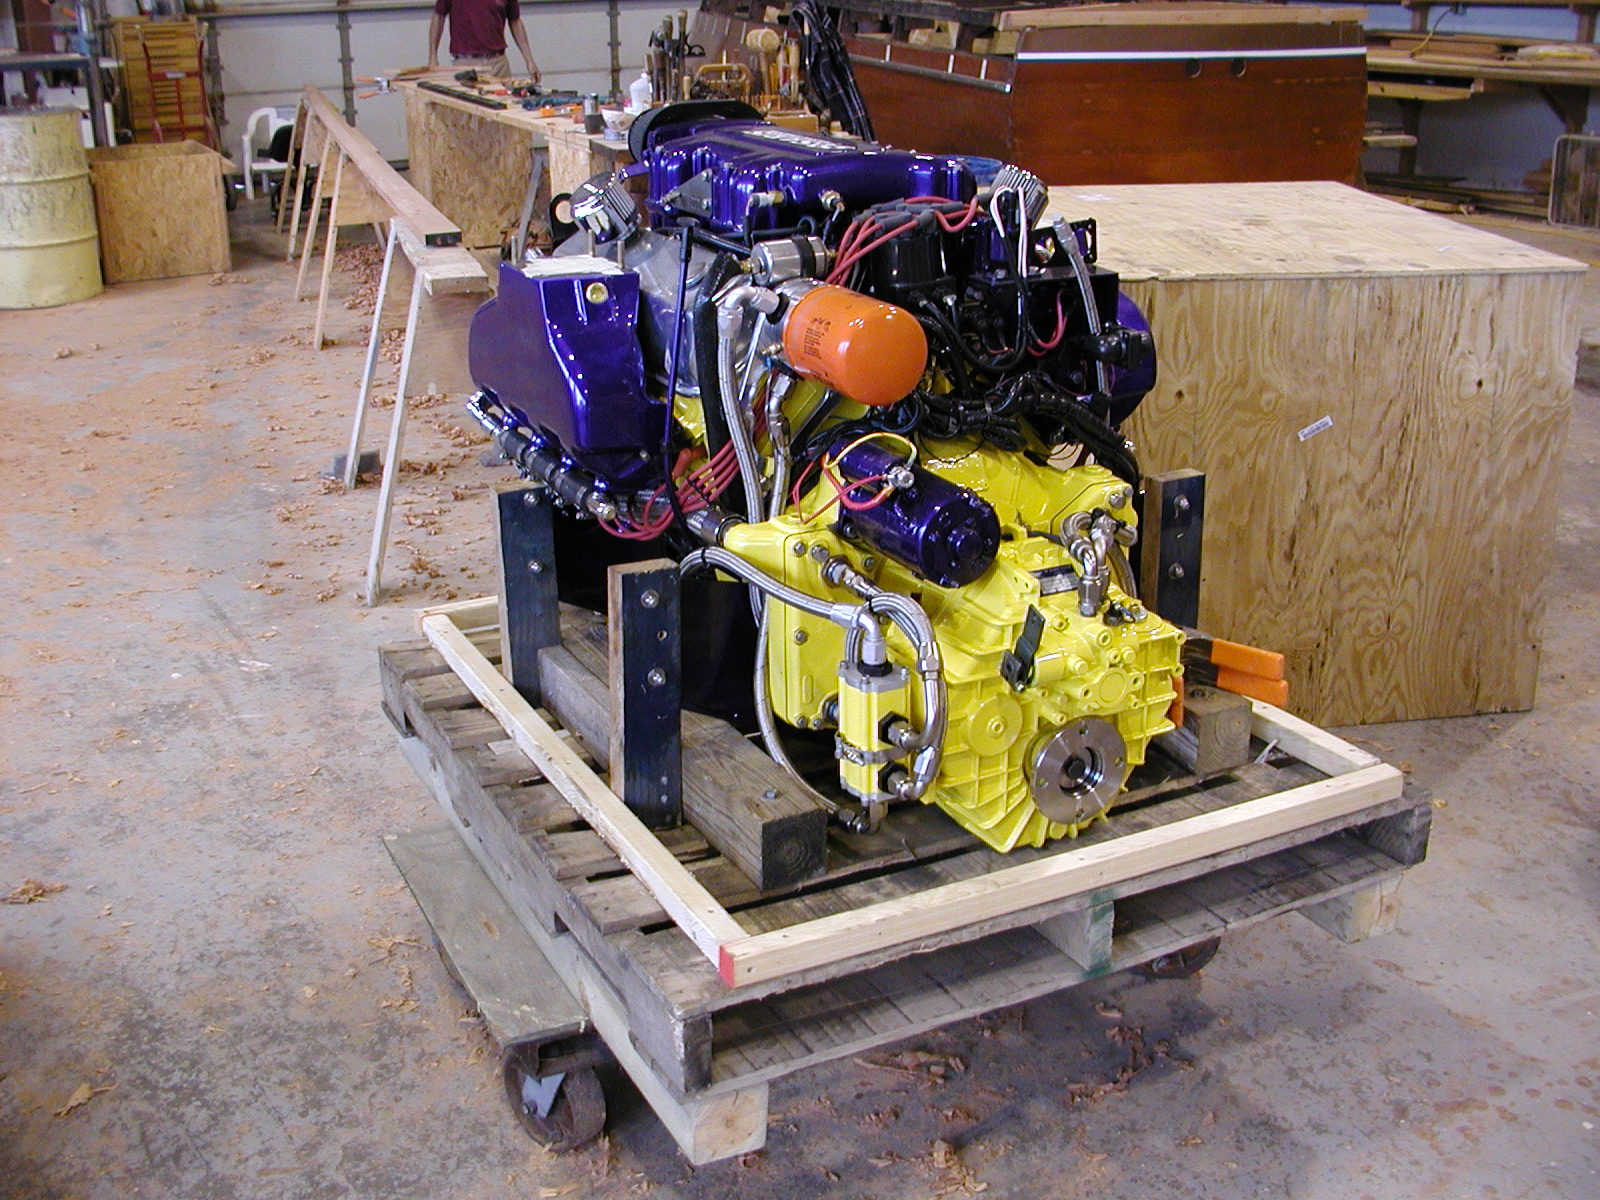 Purple and yellow color combination on custom engine of Jacqueline